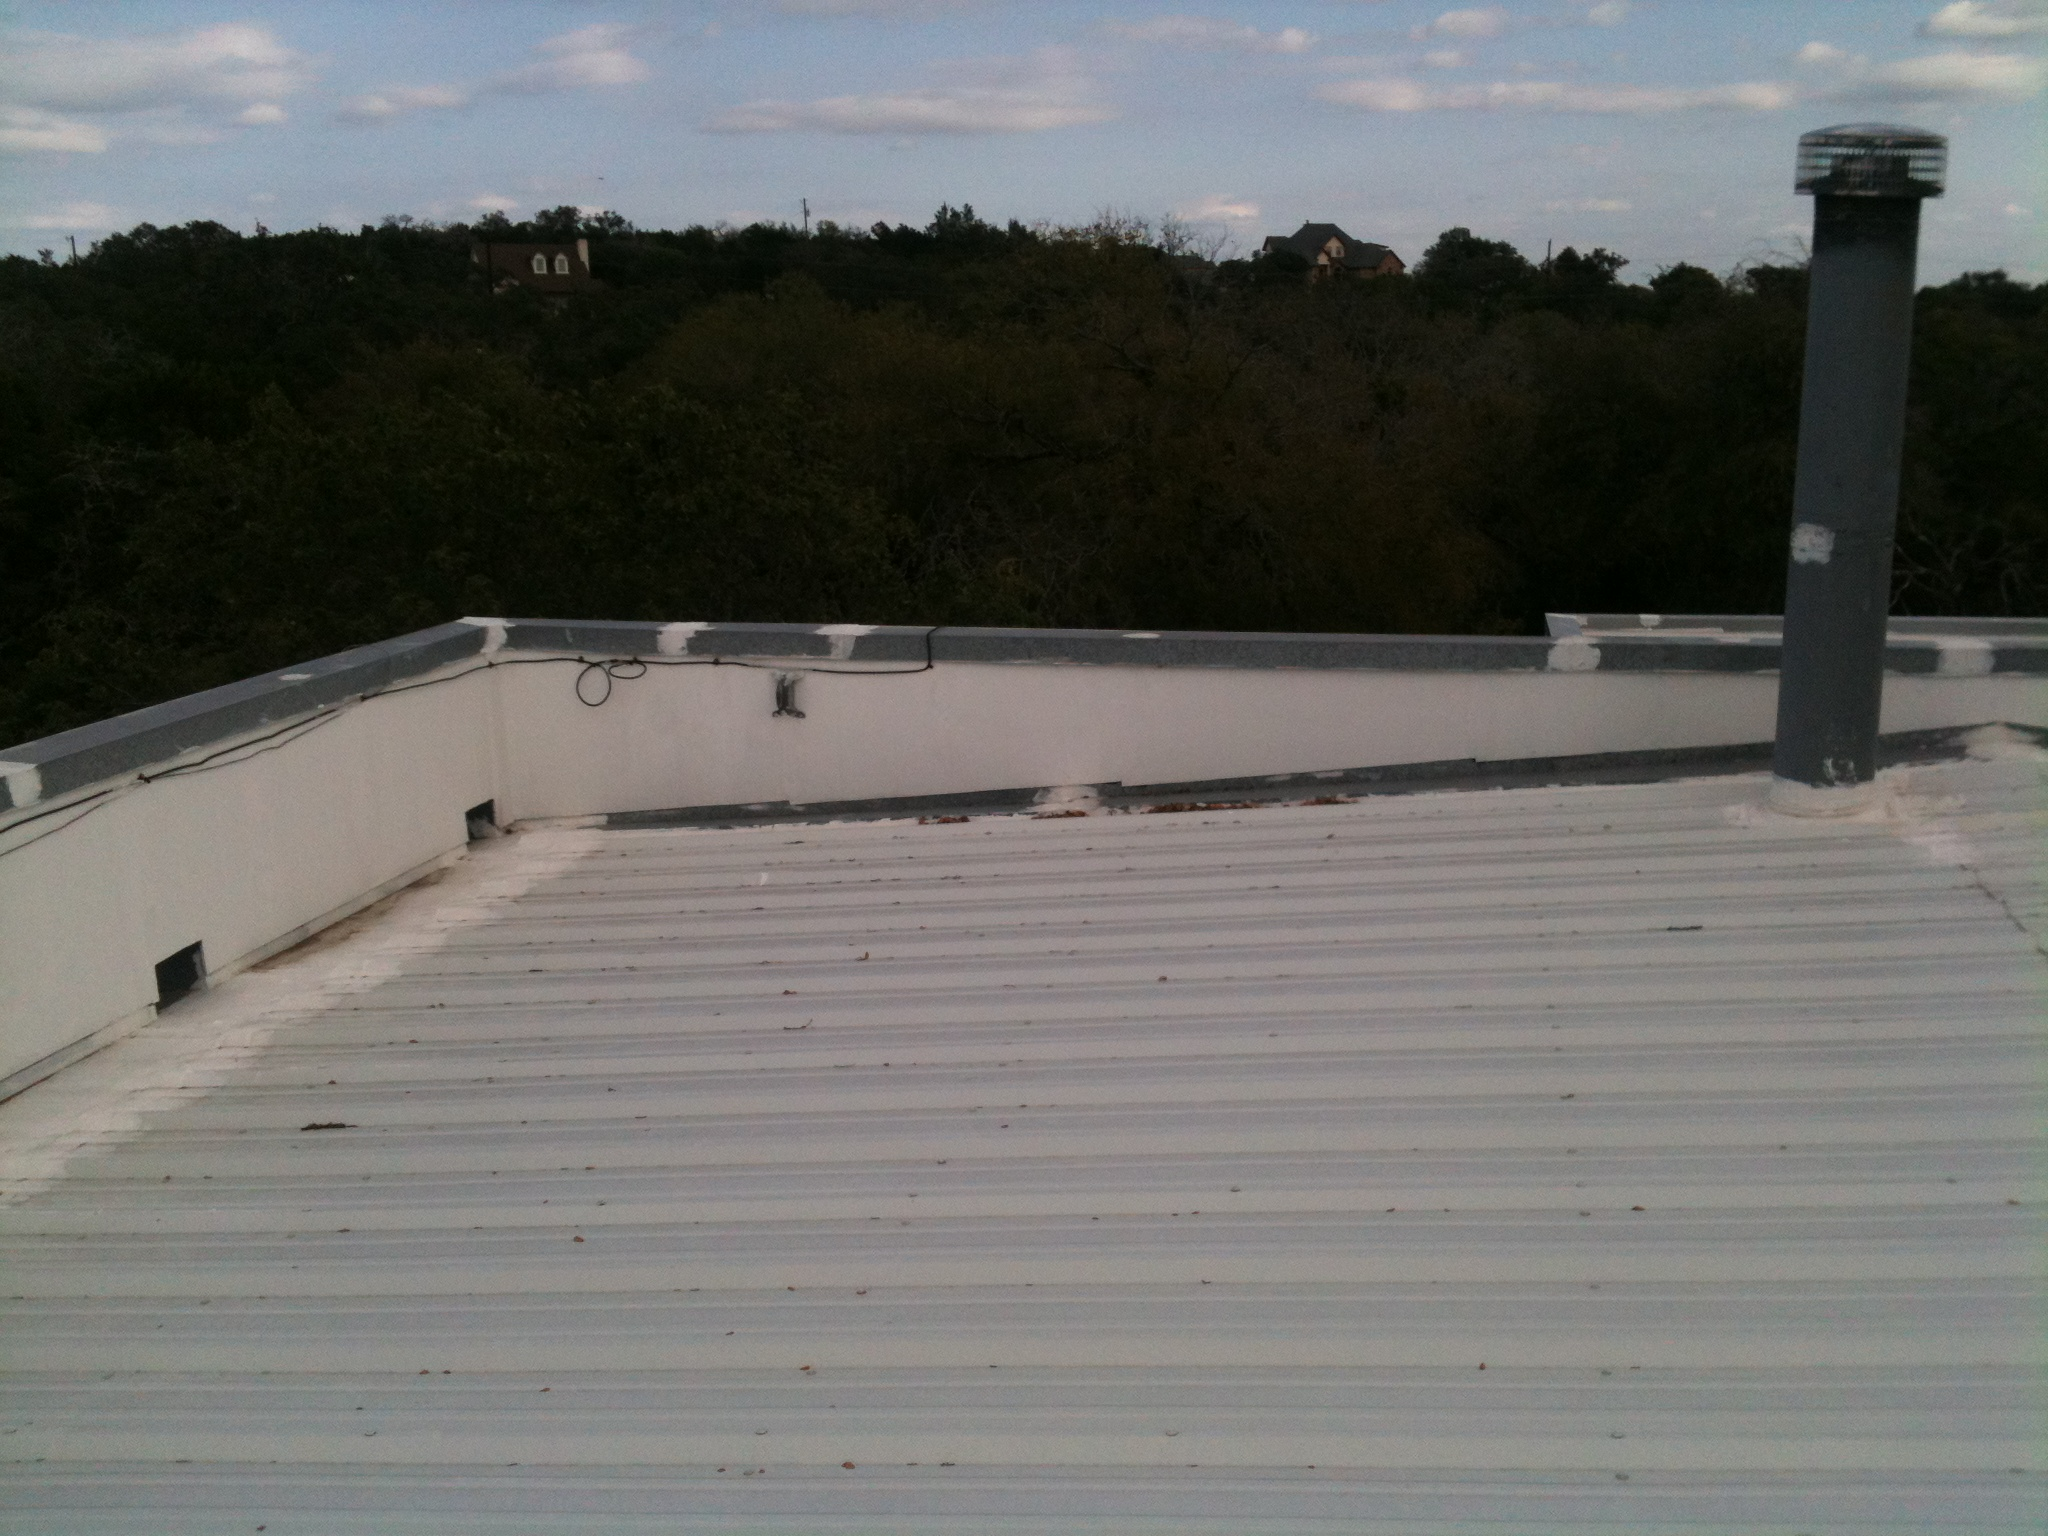 Commercial Roof Repairs & Construction - Texas Built Roofing - Waco, Texas